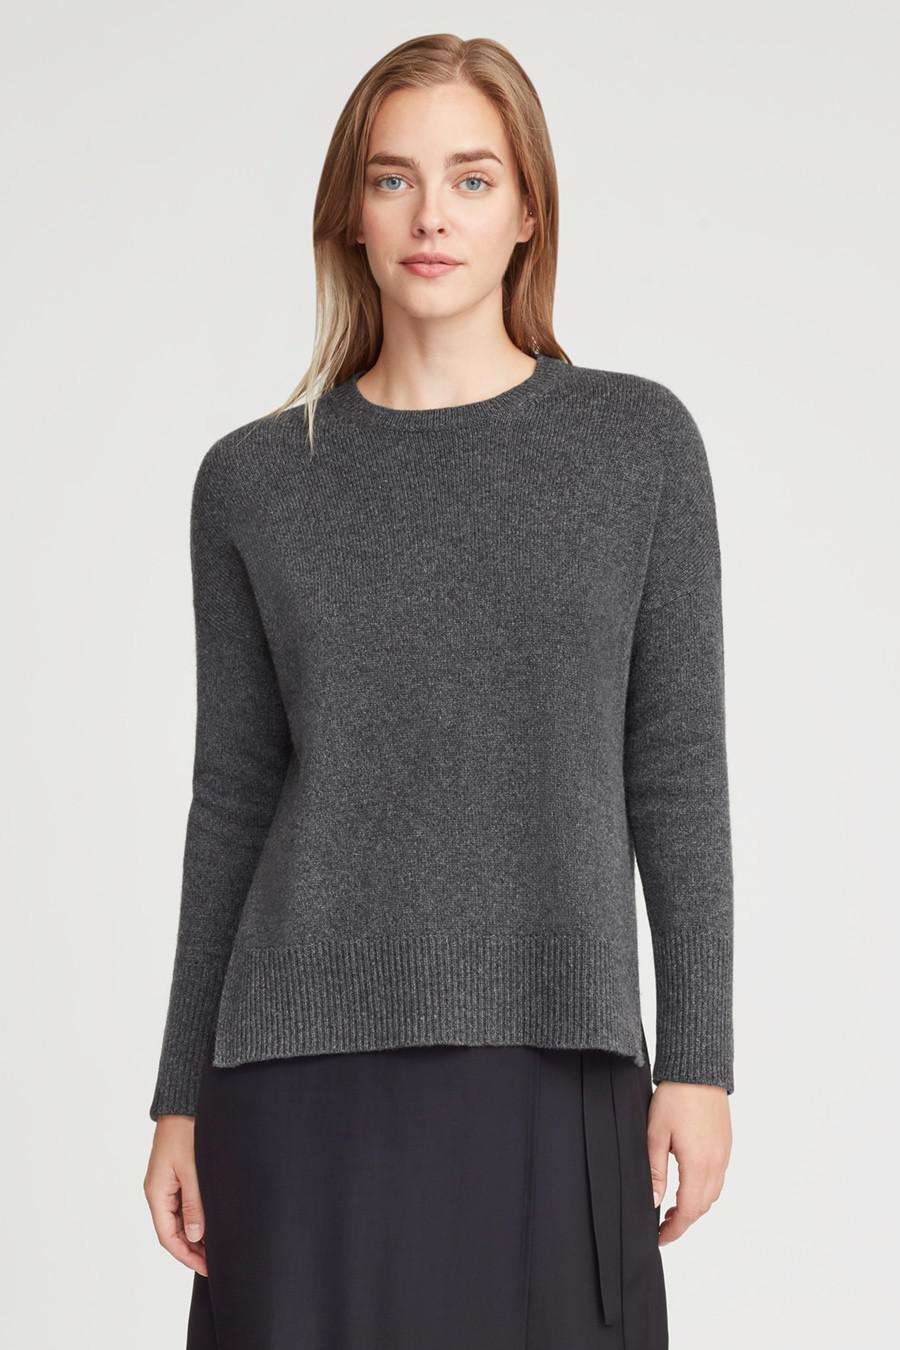 Women's Recycled Crewneck Sweater in Charcoal | Size: 1